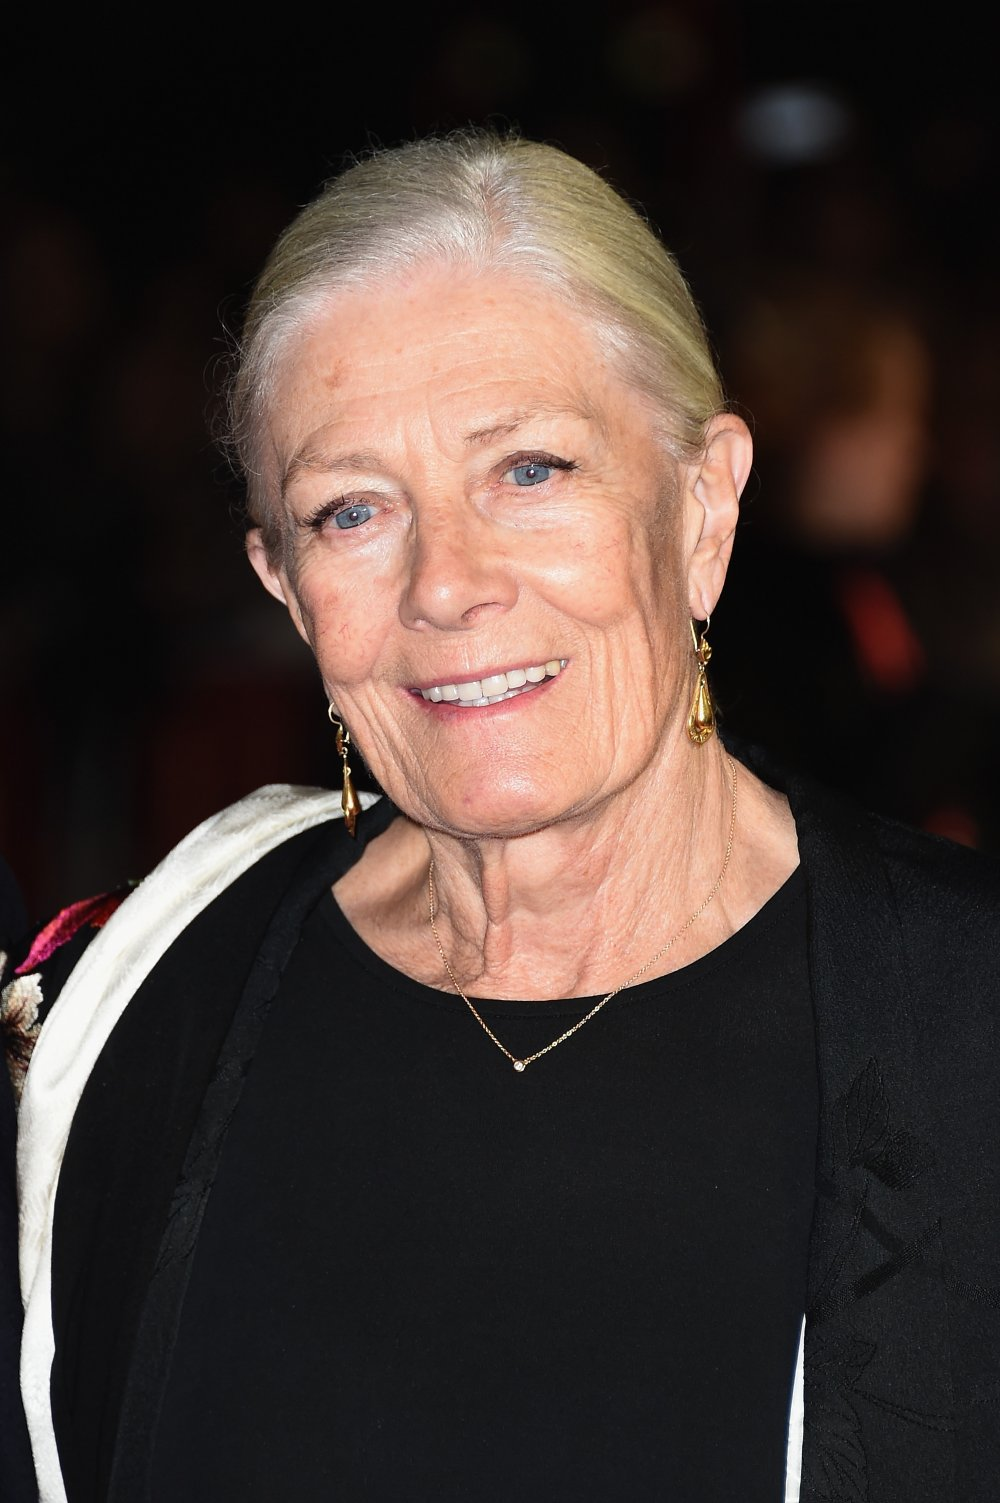 Vanessa Redgrave on the red carpet for Foxcatcher during the 58th BFI London Film Festival